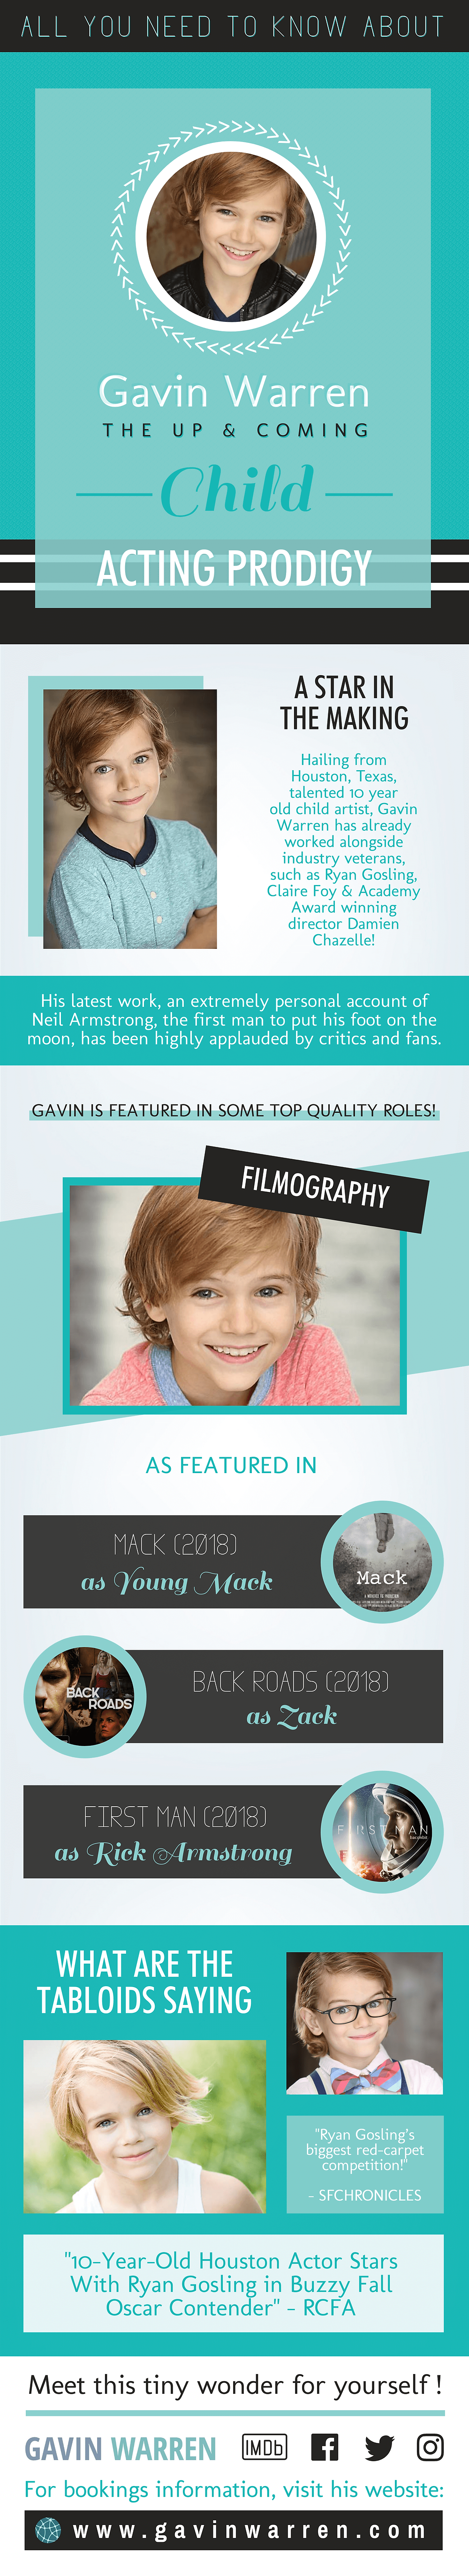 All You Need To Know About Gavin Warren - The Up & Coming Child Acting Prodigy - Thumbnail